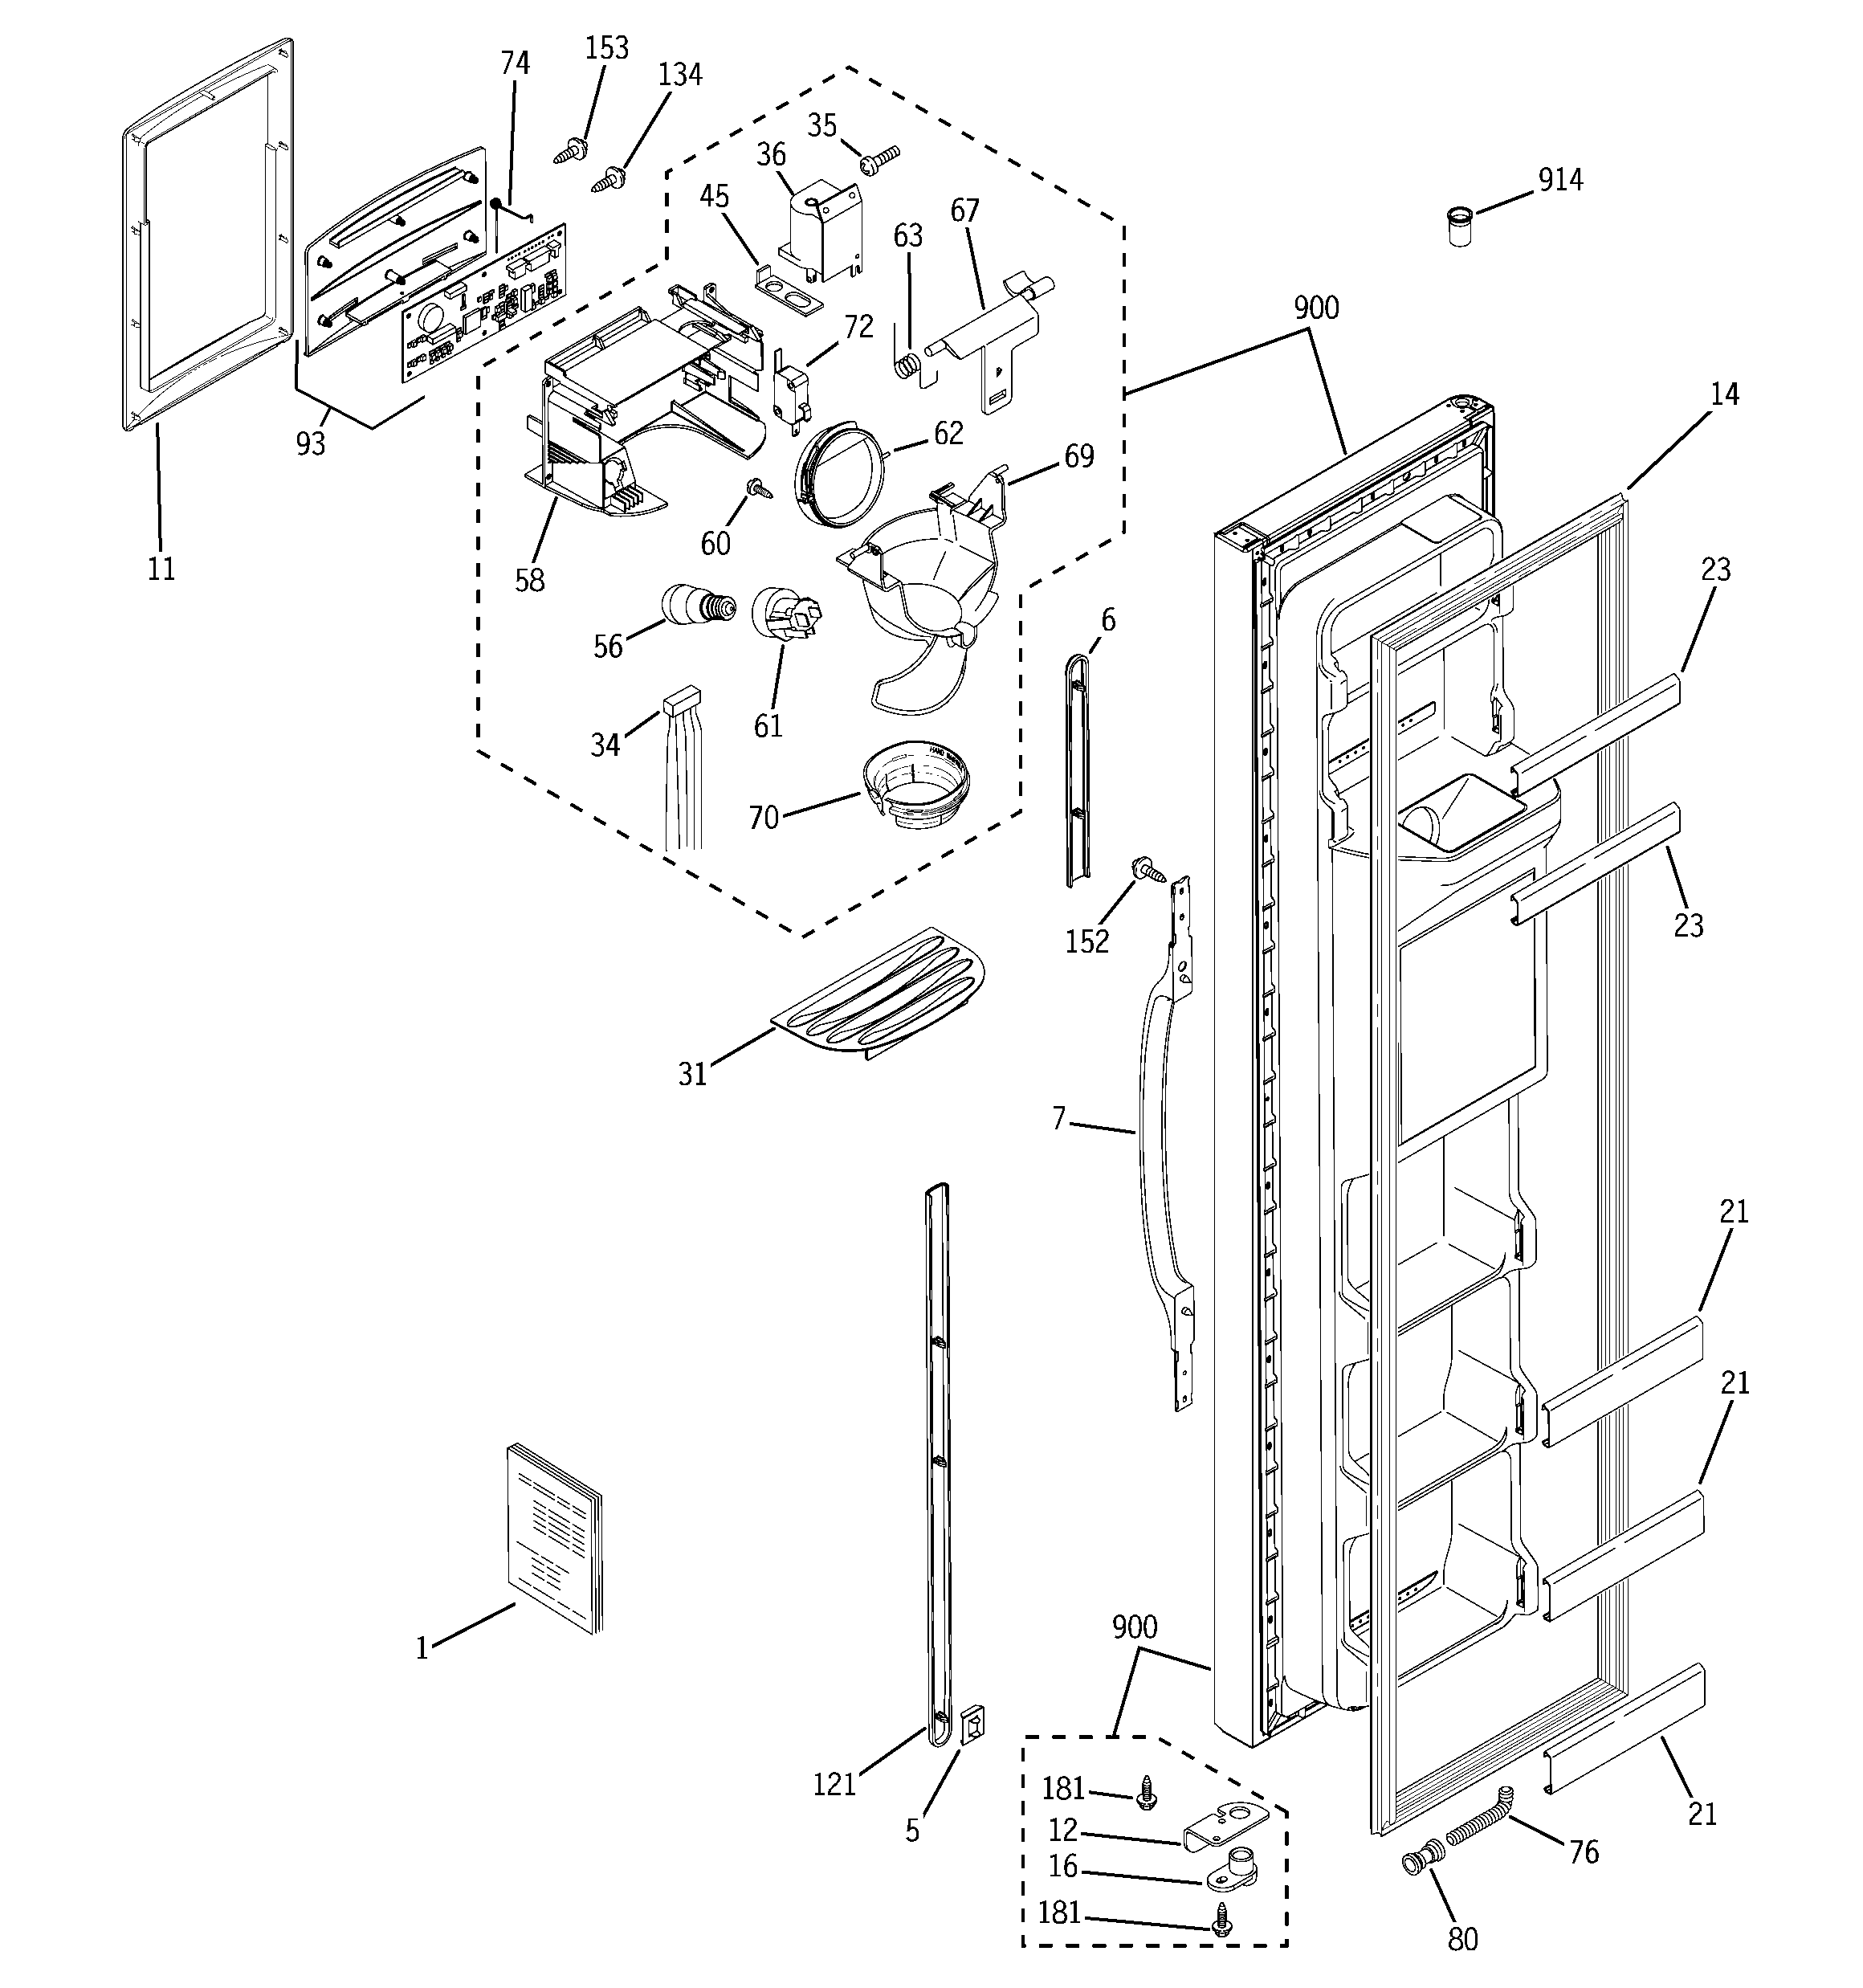 GE GSH22VGPACC freezer door diagram